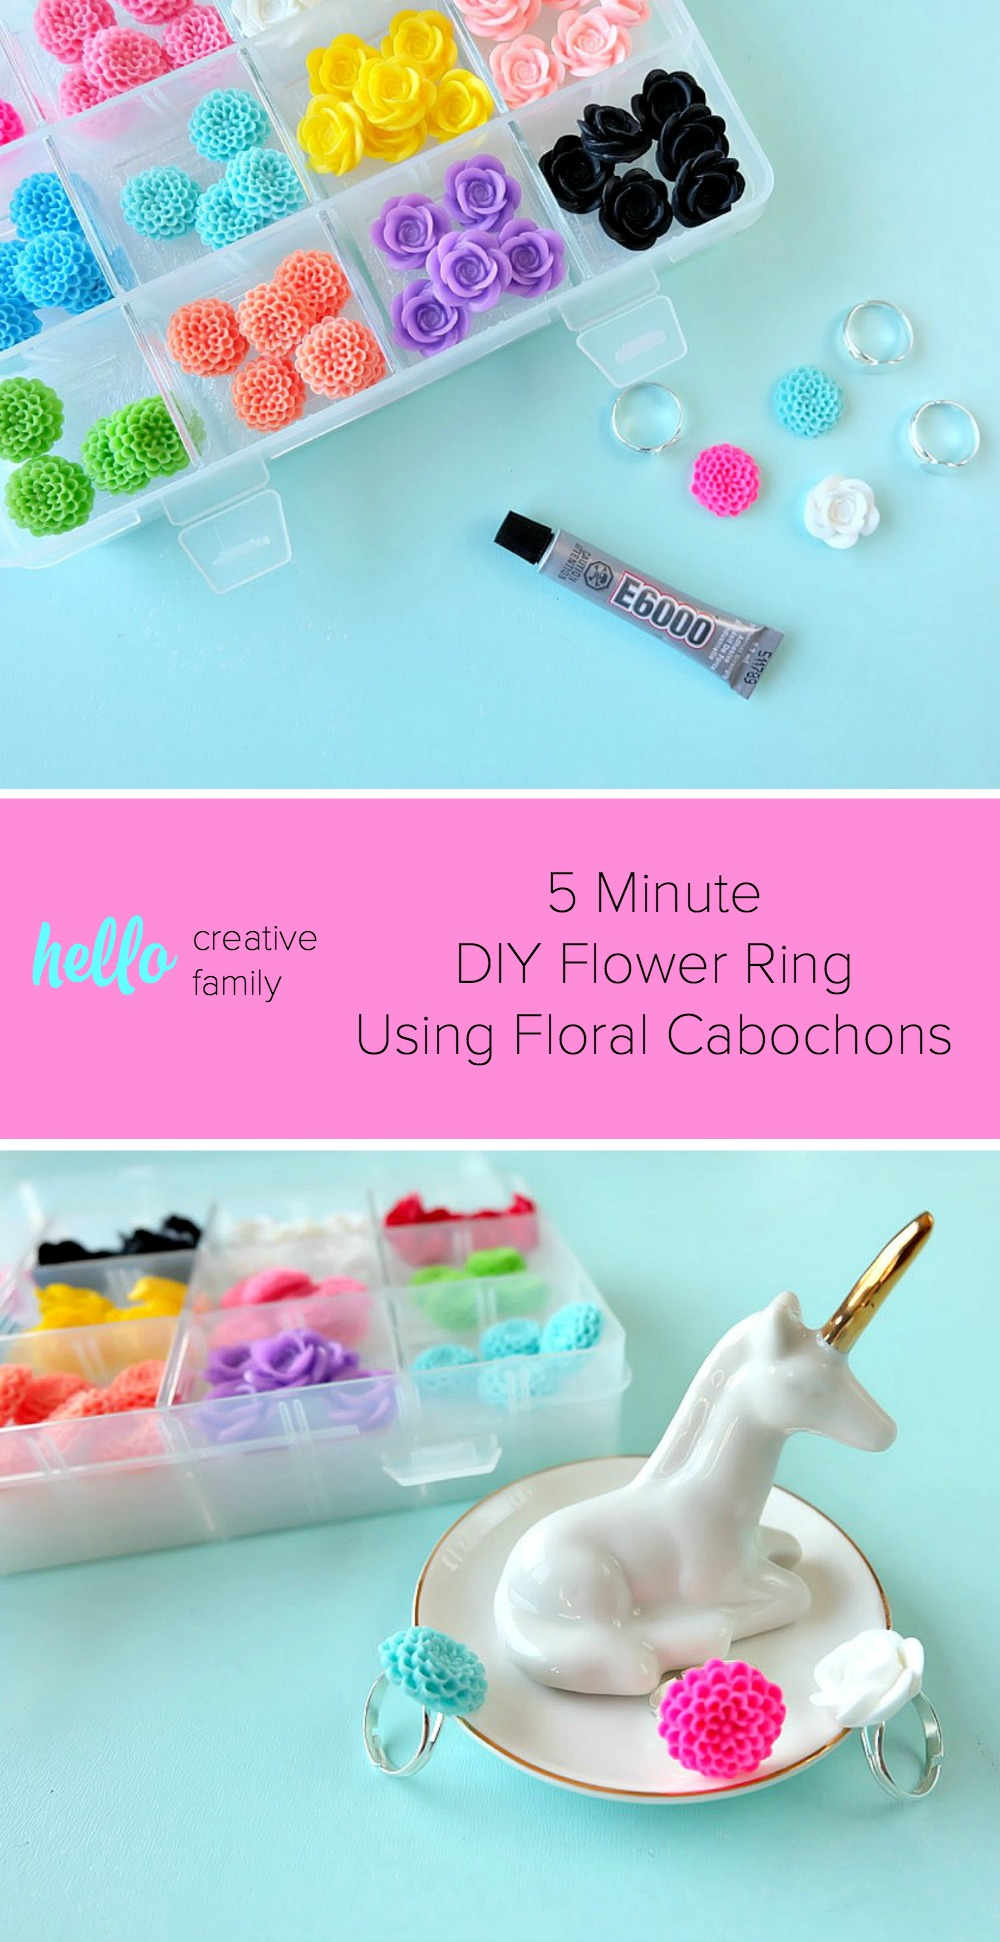 5 minutes is all it takes to make a beautiful DIY flower ring using floral cabochons! Bright & colorful these rings make a fun and easy handmade gift or party favor! Perfect for birthday parties, wedding showers, teacher gifts and friends who love to garden!